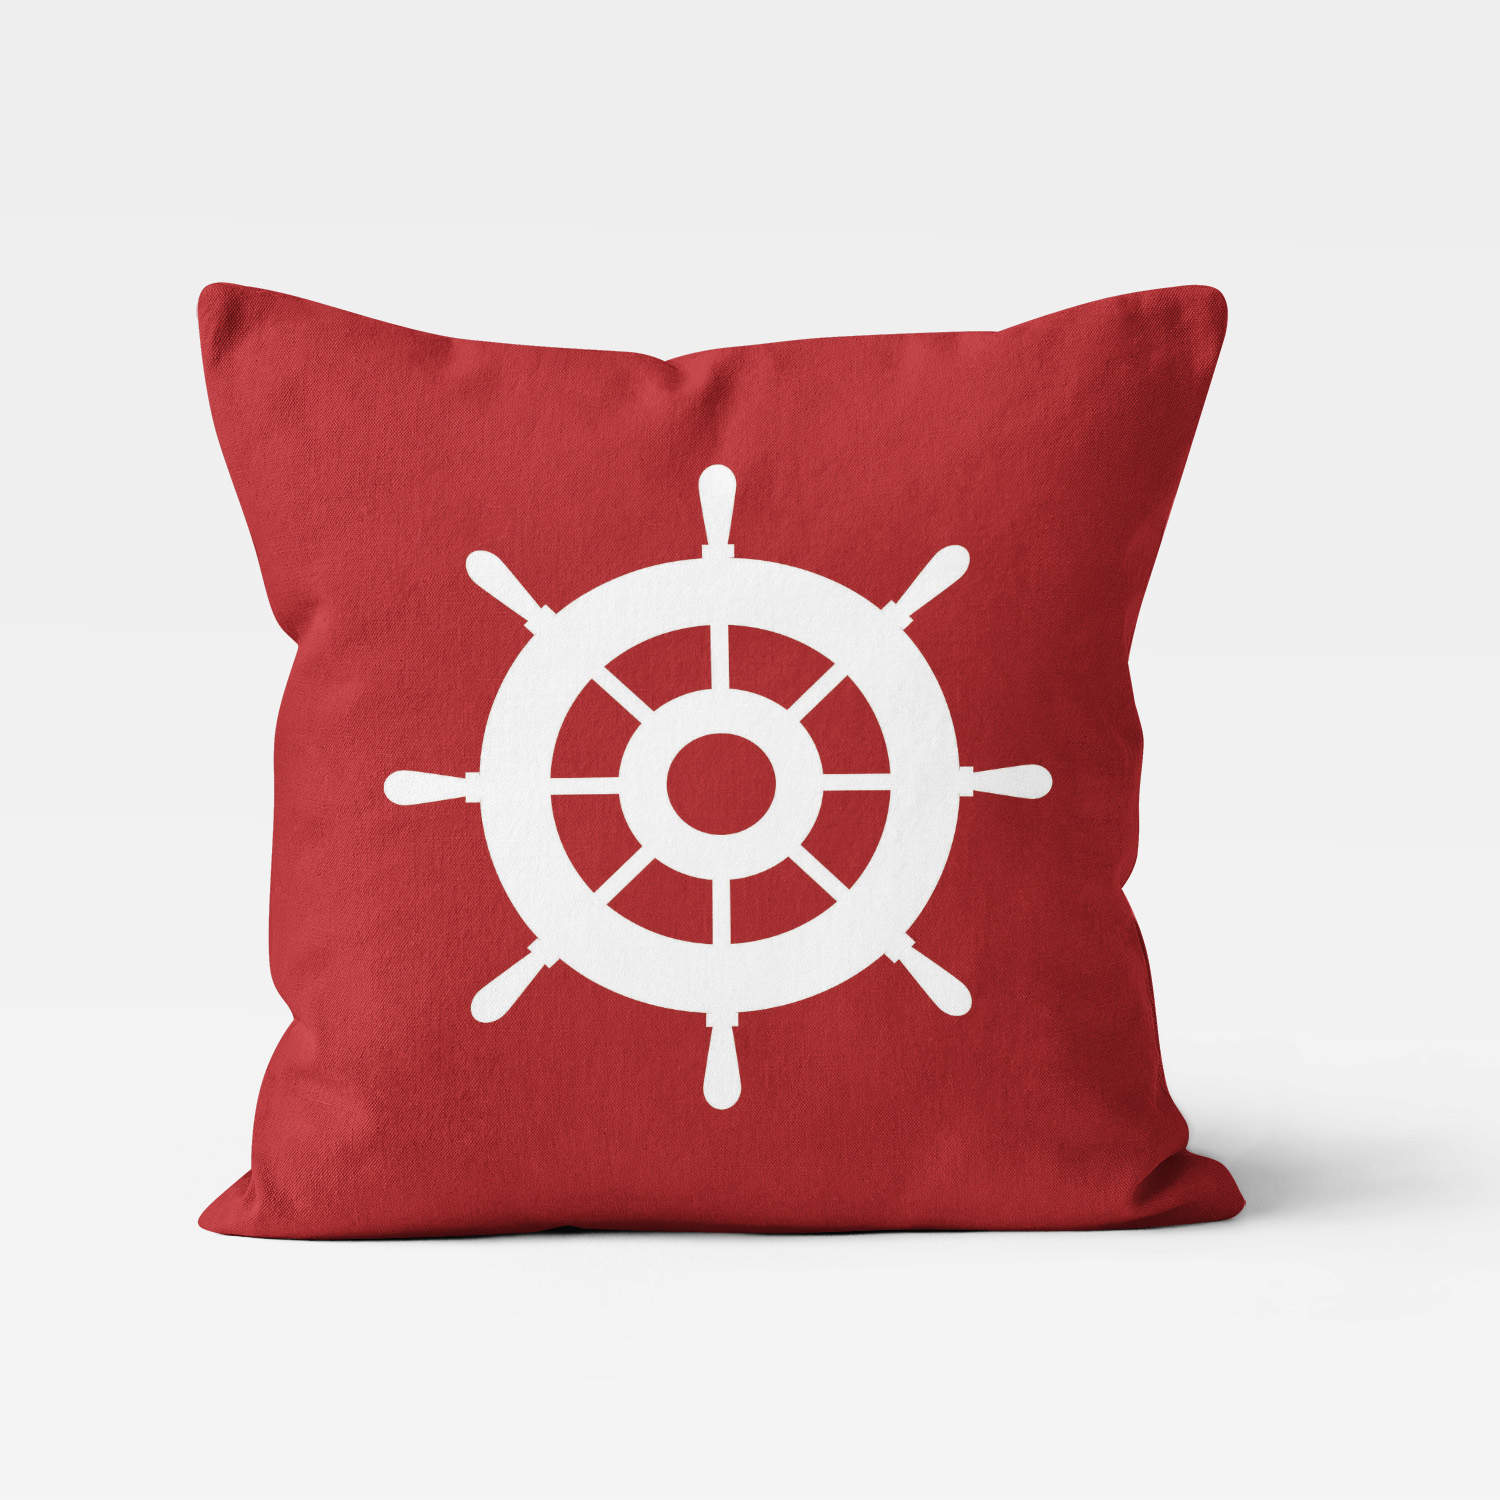 PKTP-00008-OceanAdventures-THROWPILLOW Ocean Adventures Nautical Theme Wheel House Boys Kids Accent Throw Pillow Room Decor Accessories by Pickleberry Kids